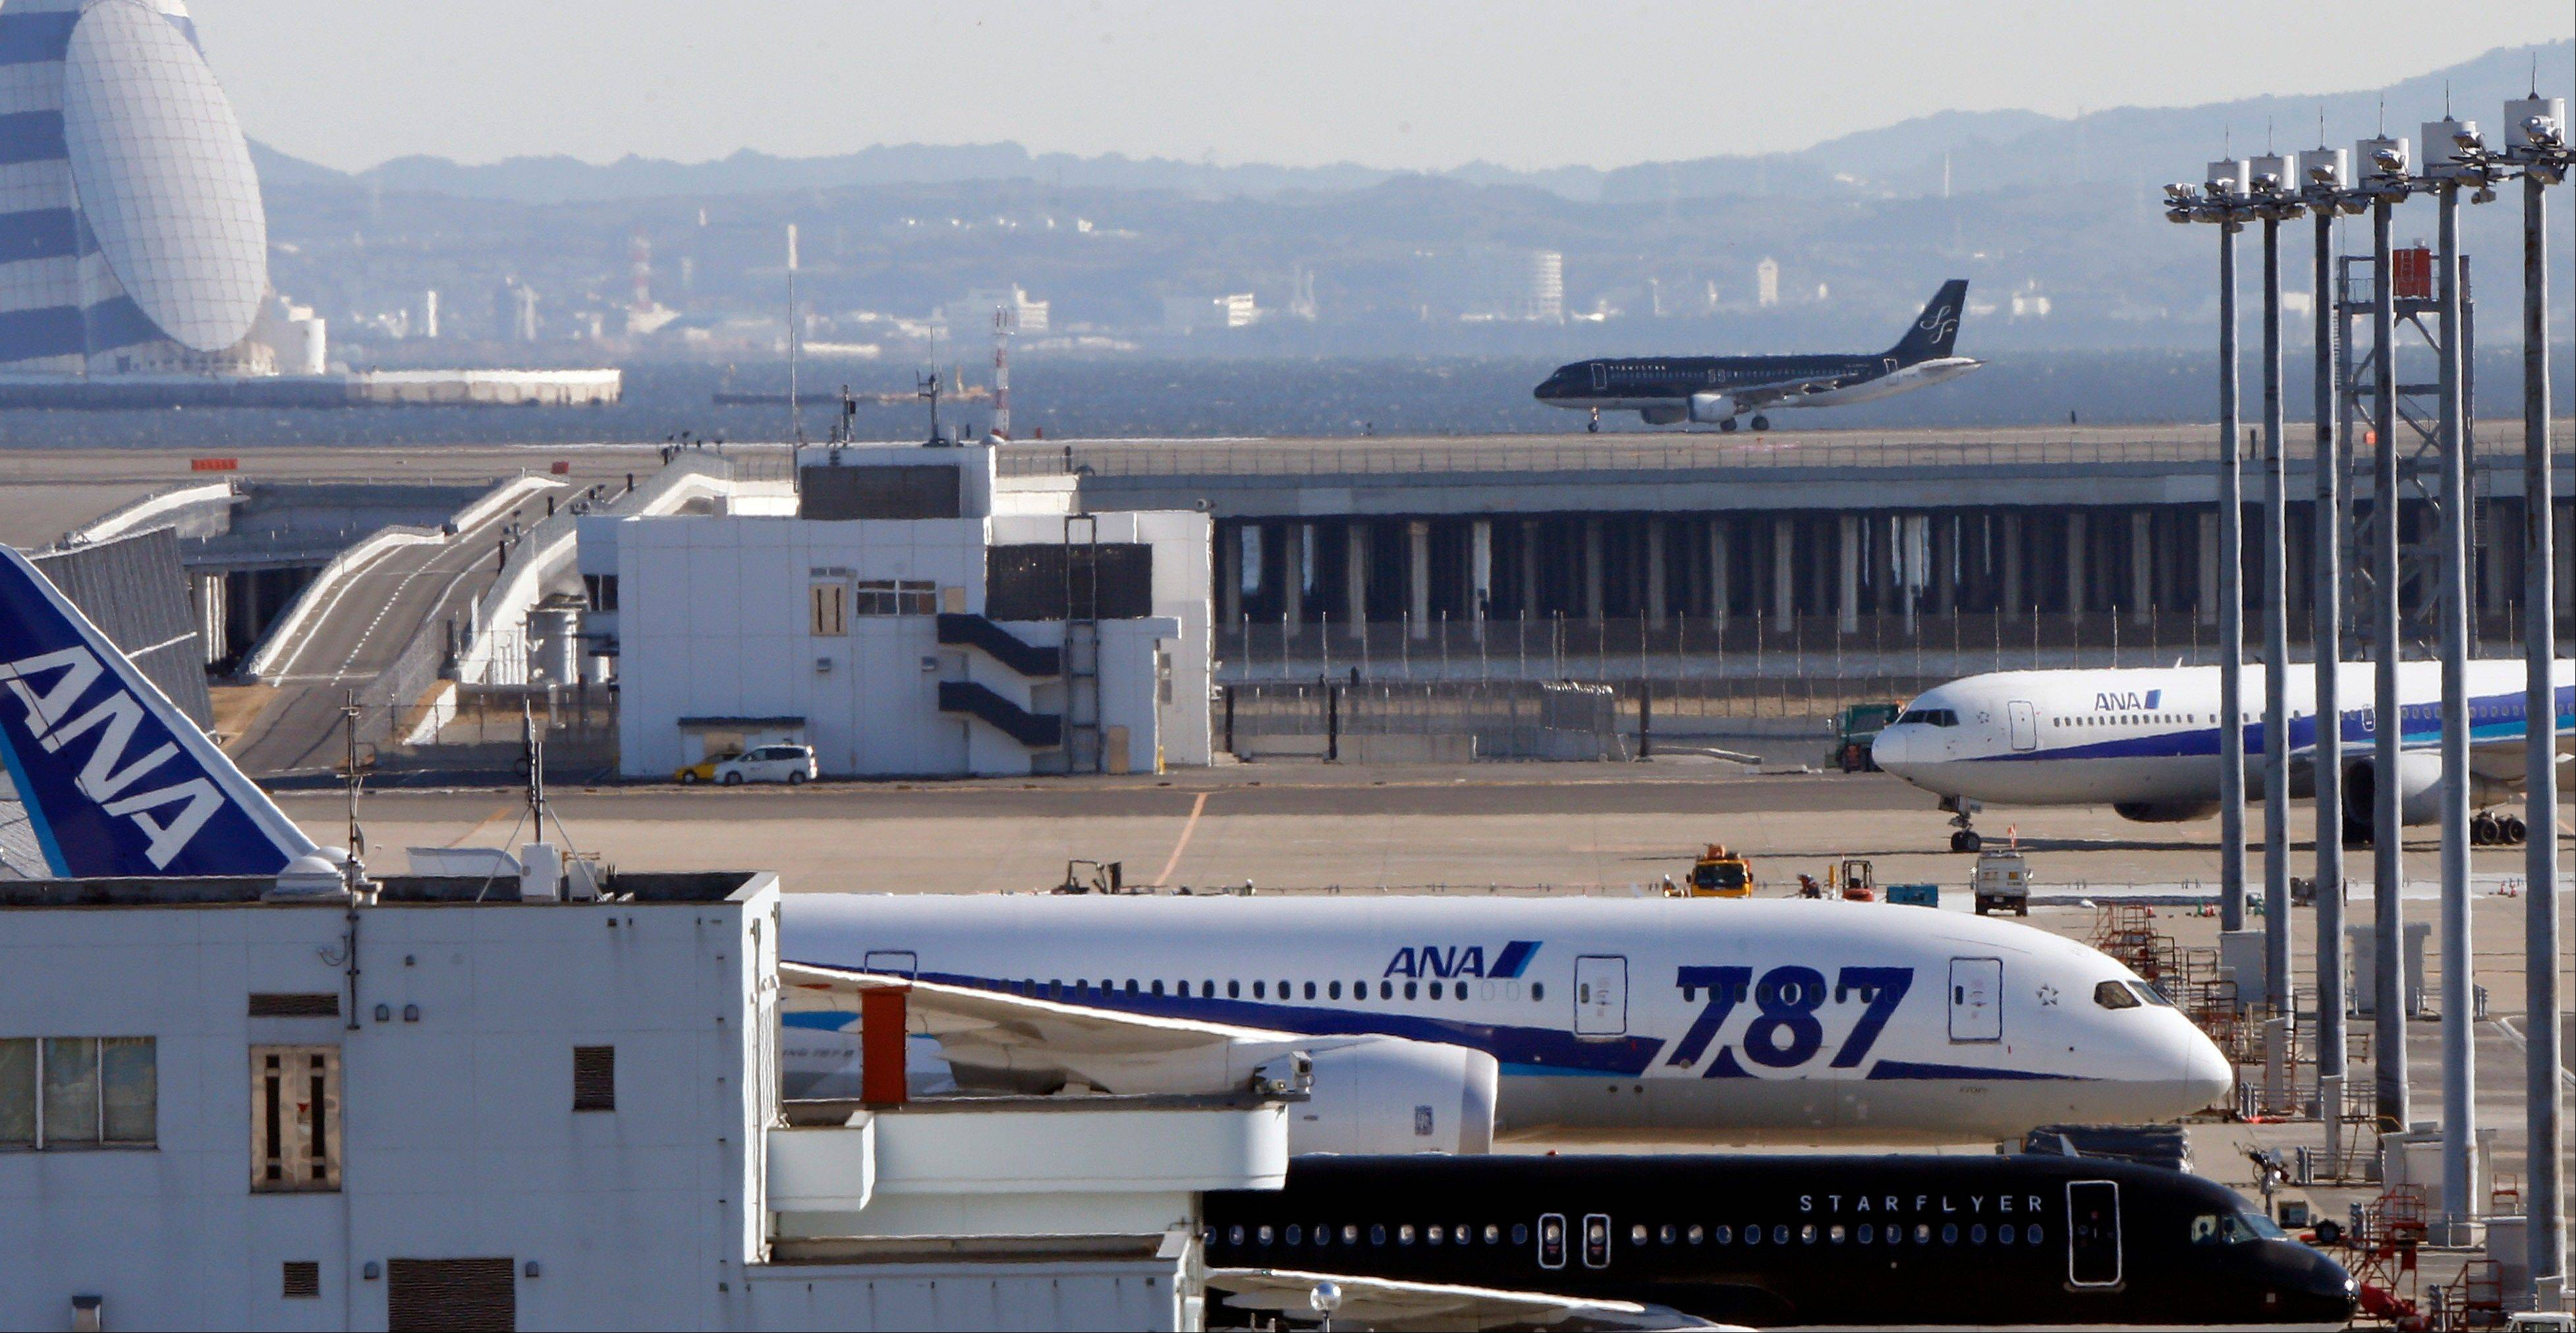 A grounded All Nippon Airways' Boeing 787 on the tarmac at Haneda airport in Tokyo.